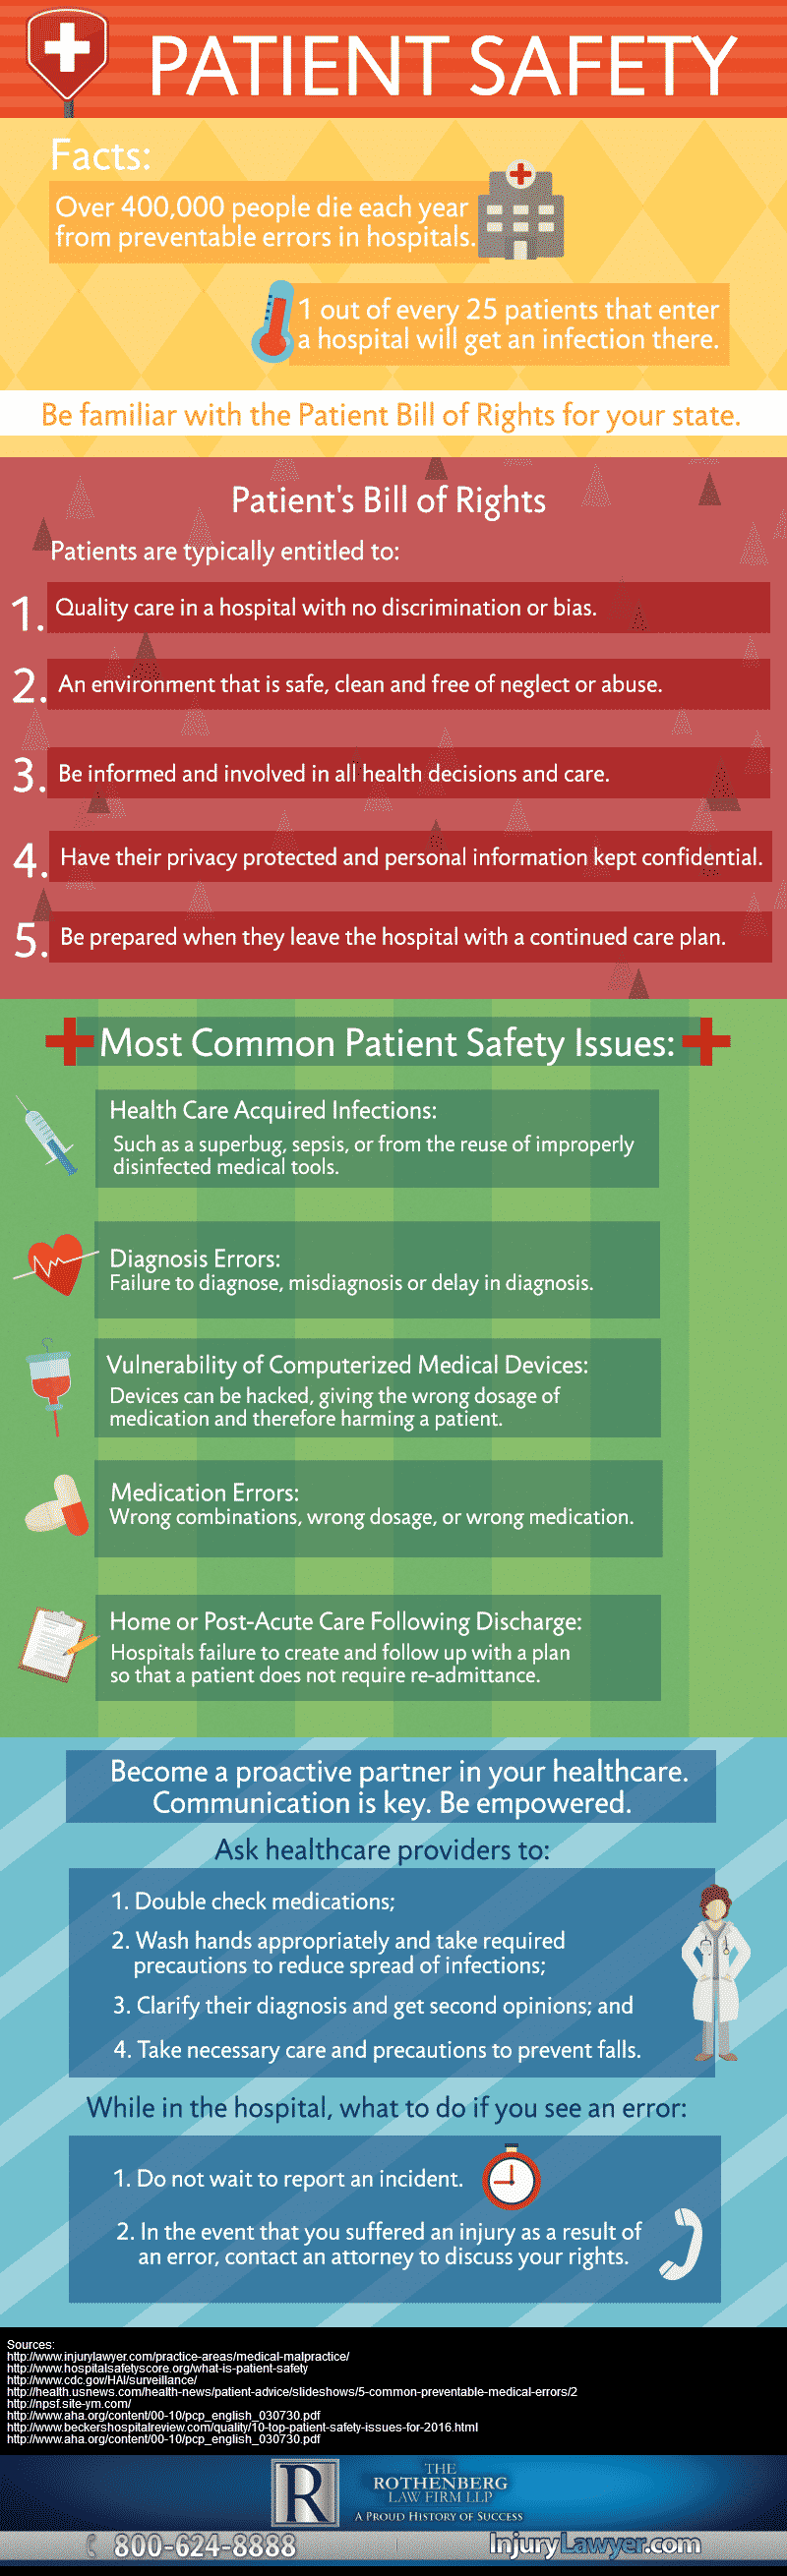 patient safety infographic